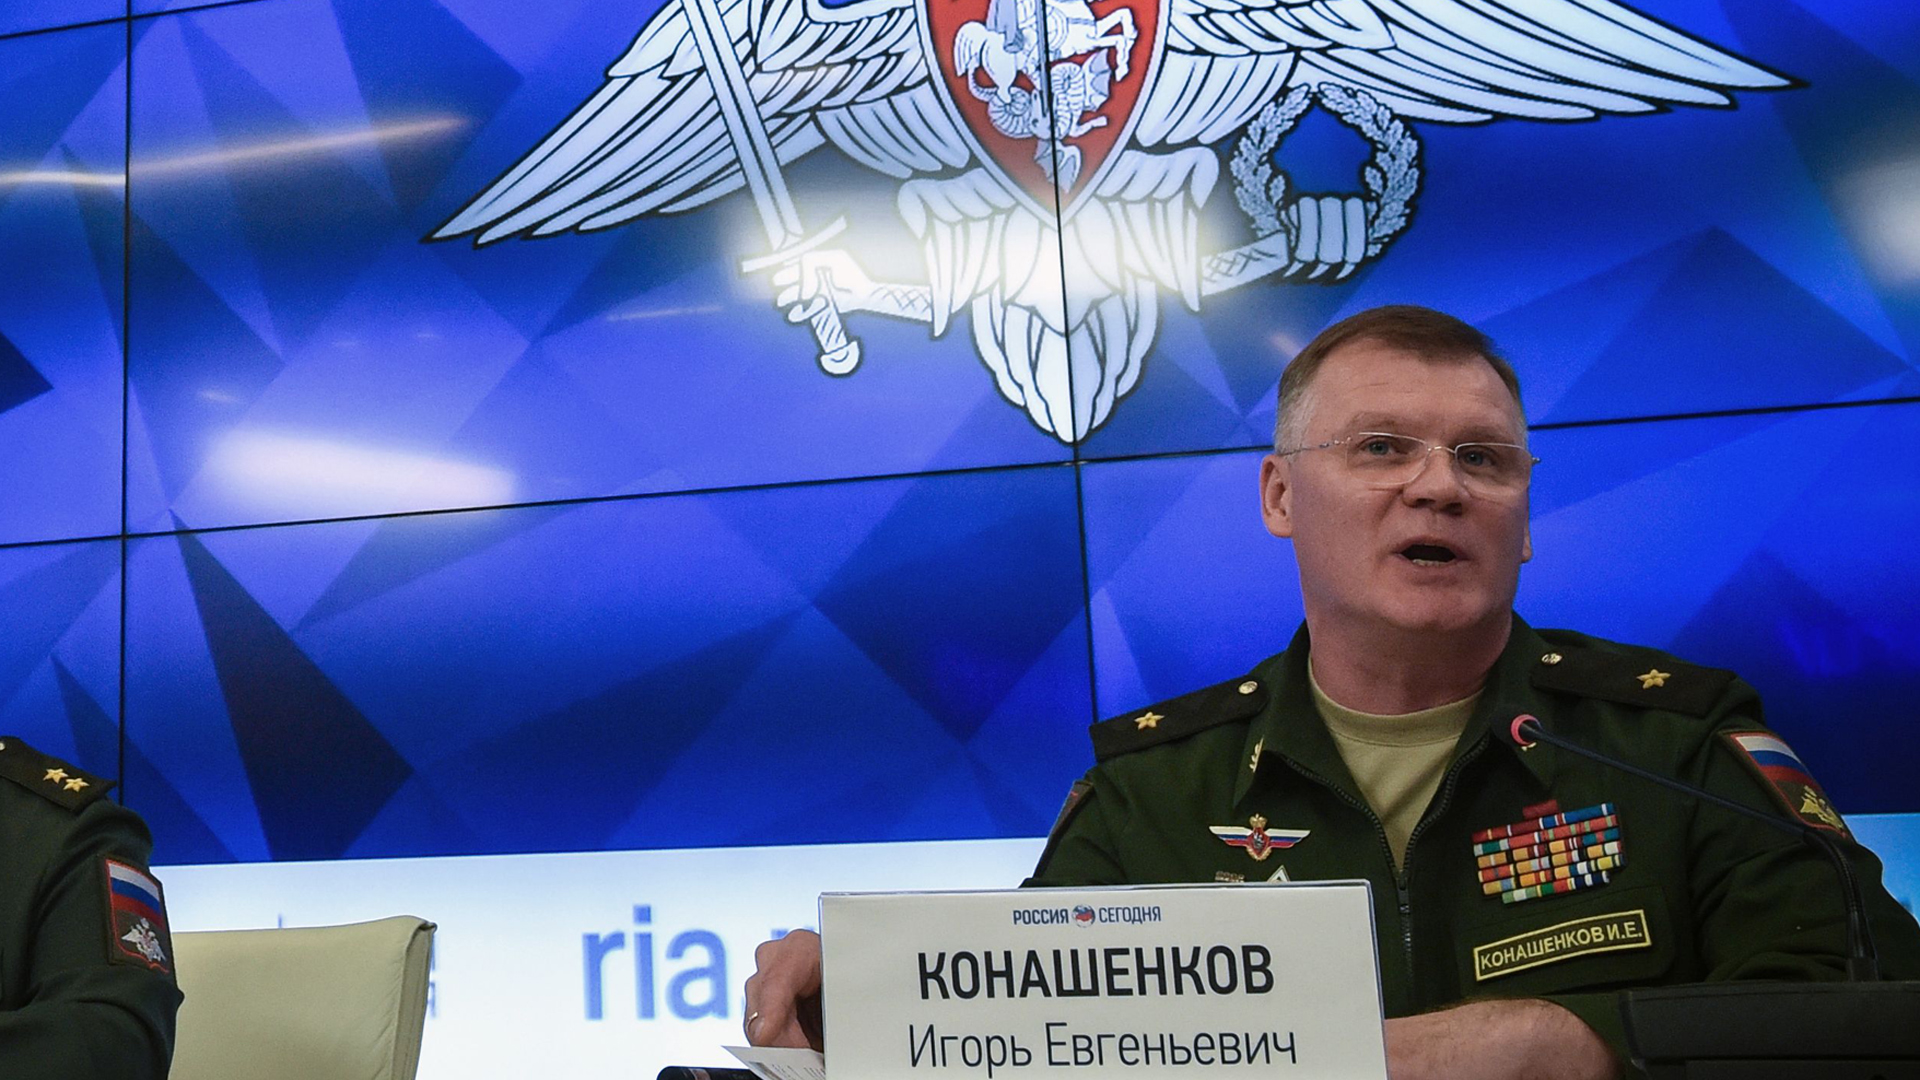 Russia's defense ministry spokesman Maj. Gen. Igor Konashenkov attends a press briefing dedicated to the crash of the Malaysia Airlines Boeing 777 plane operating flight MH17 in Moscow on Sept. 17, 2018.(Credit: VASILY MAXIMOV/AFP/Getty Images)